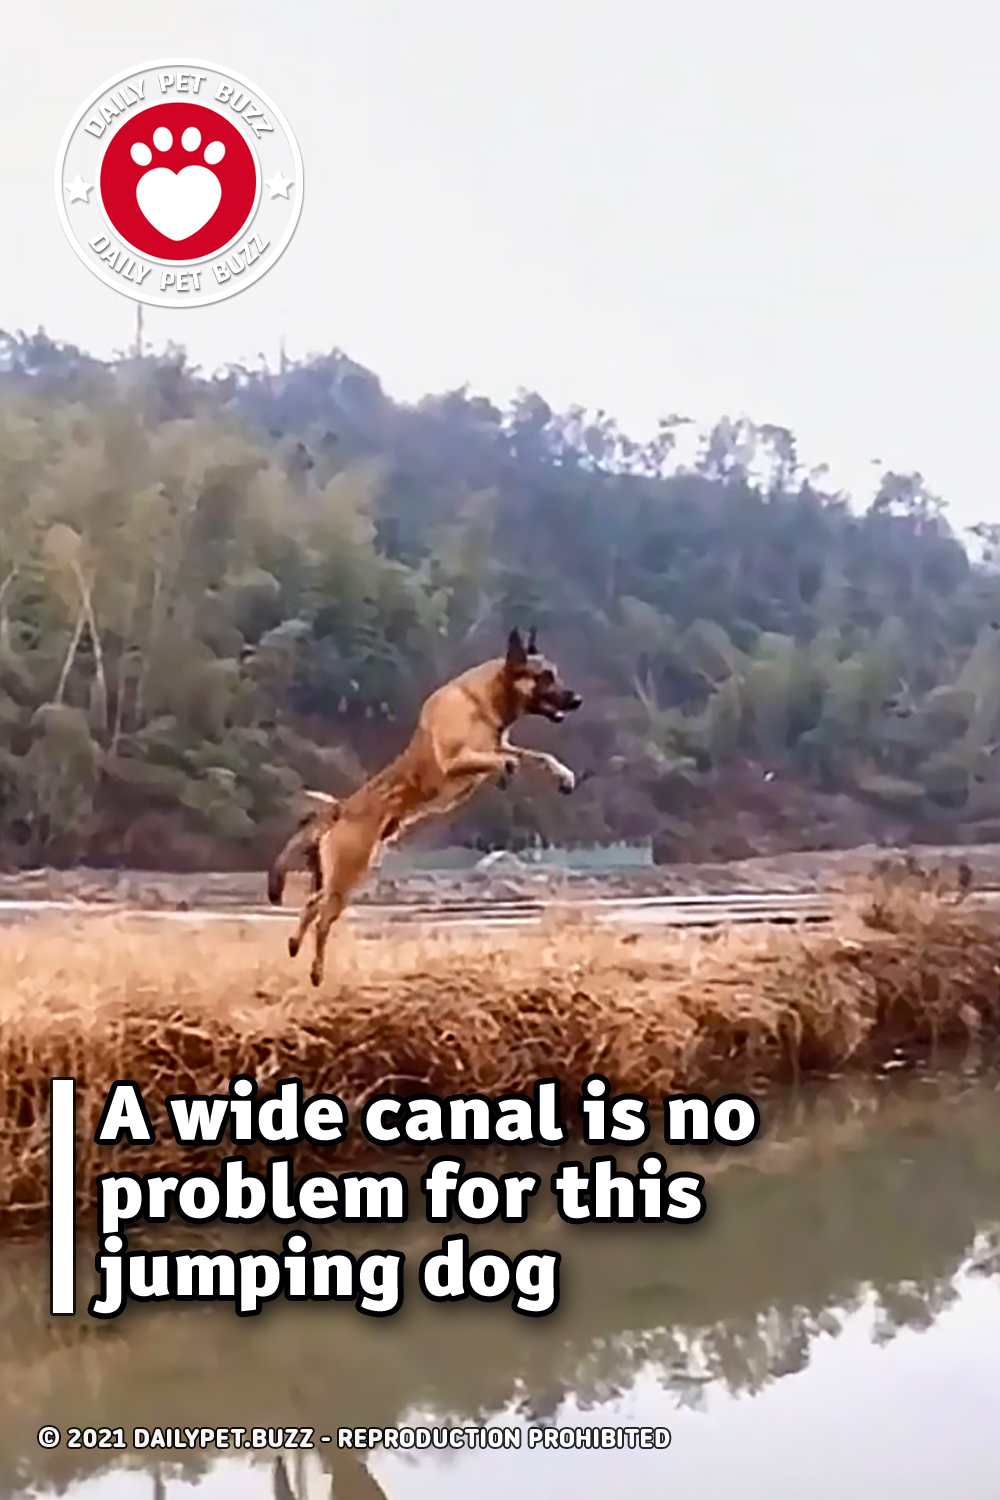 A wide canal is no problem for this jumping dog